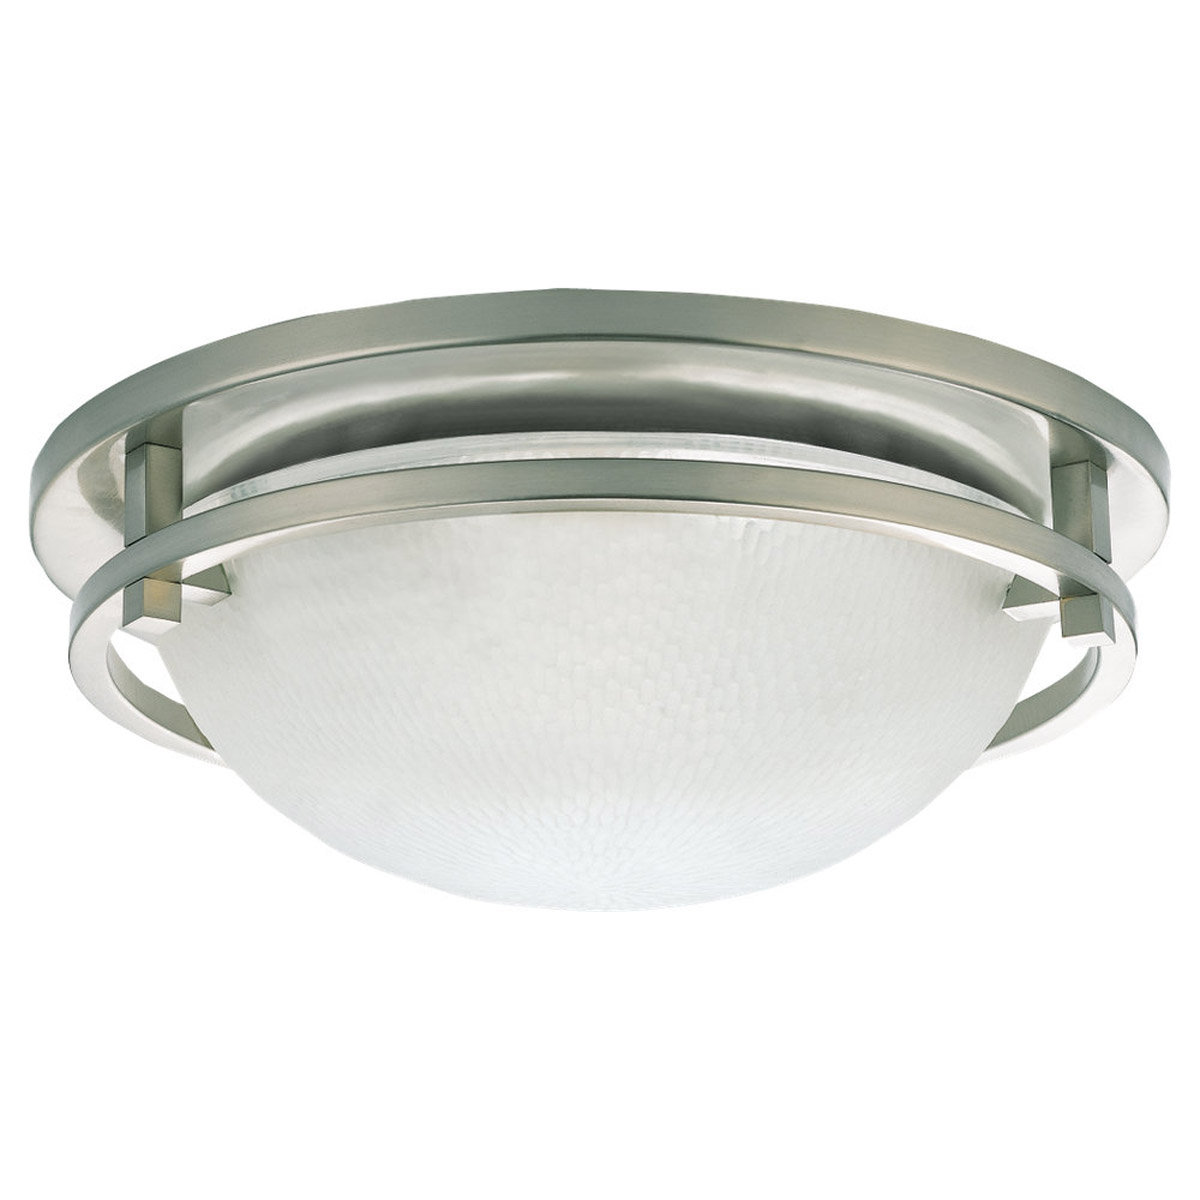 Sea Gull Lighting Eternity 2 Light Flush Mount in Brushed Nickel 75114-962